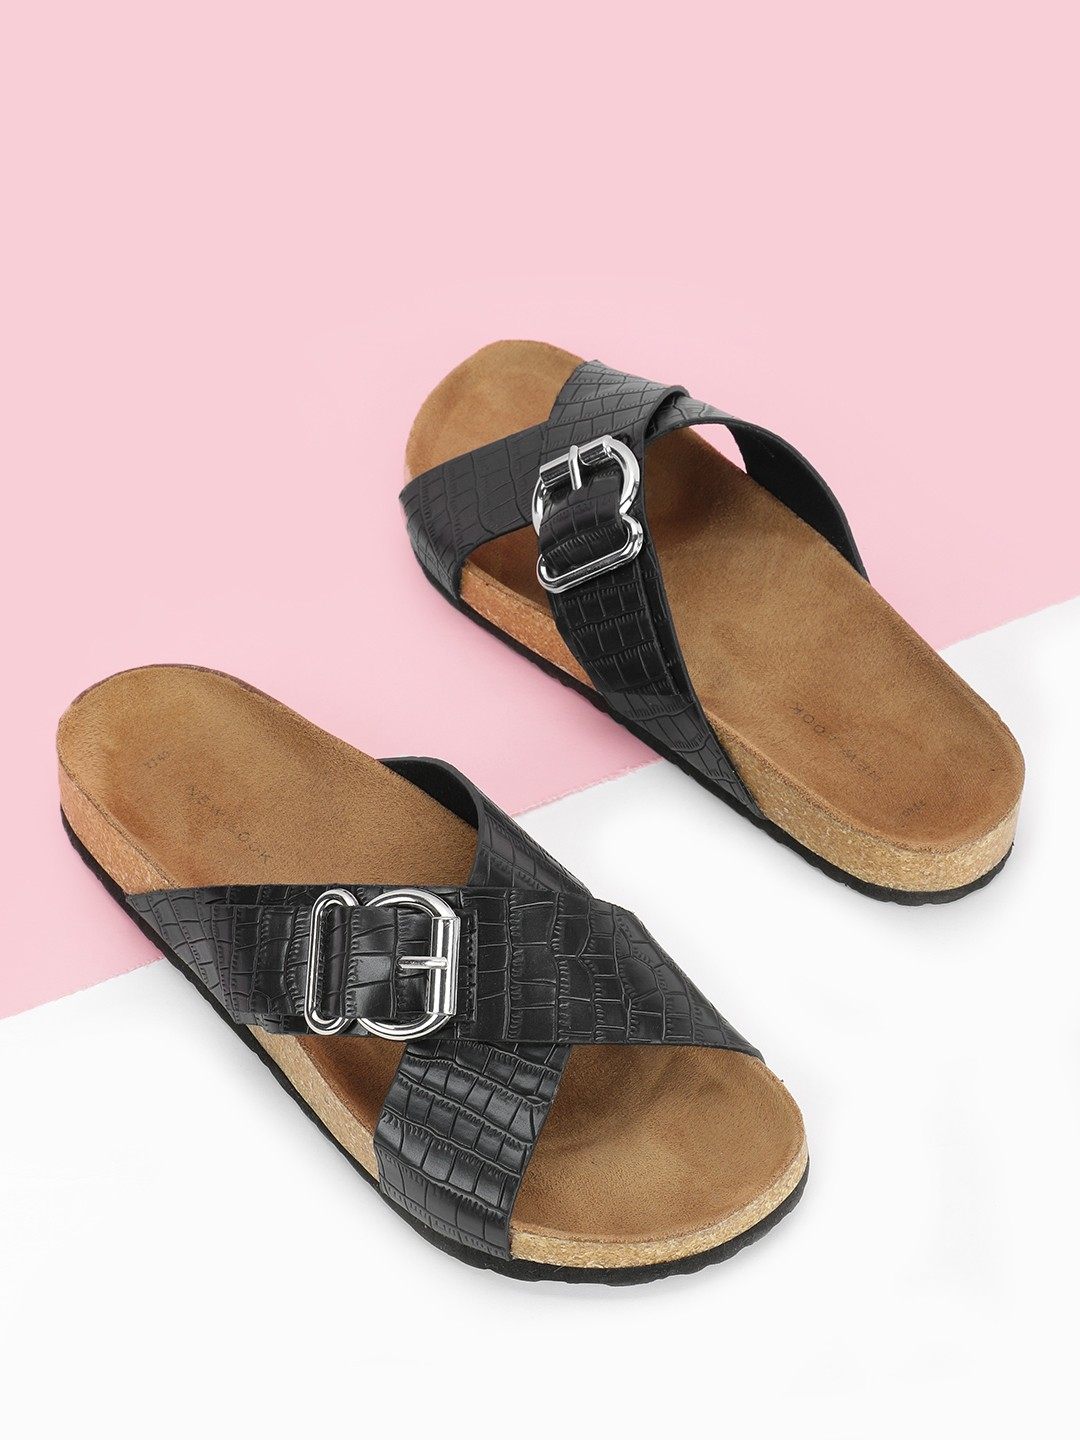 New Look Black Cross Buckle Textured Strap Flat Sandals 1